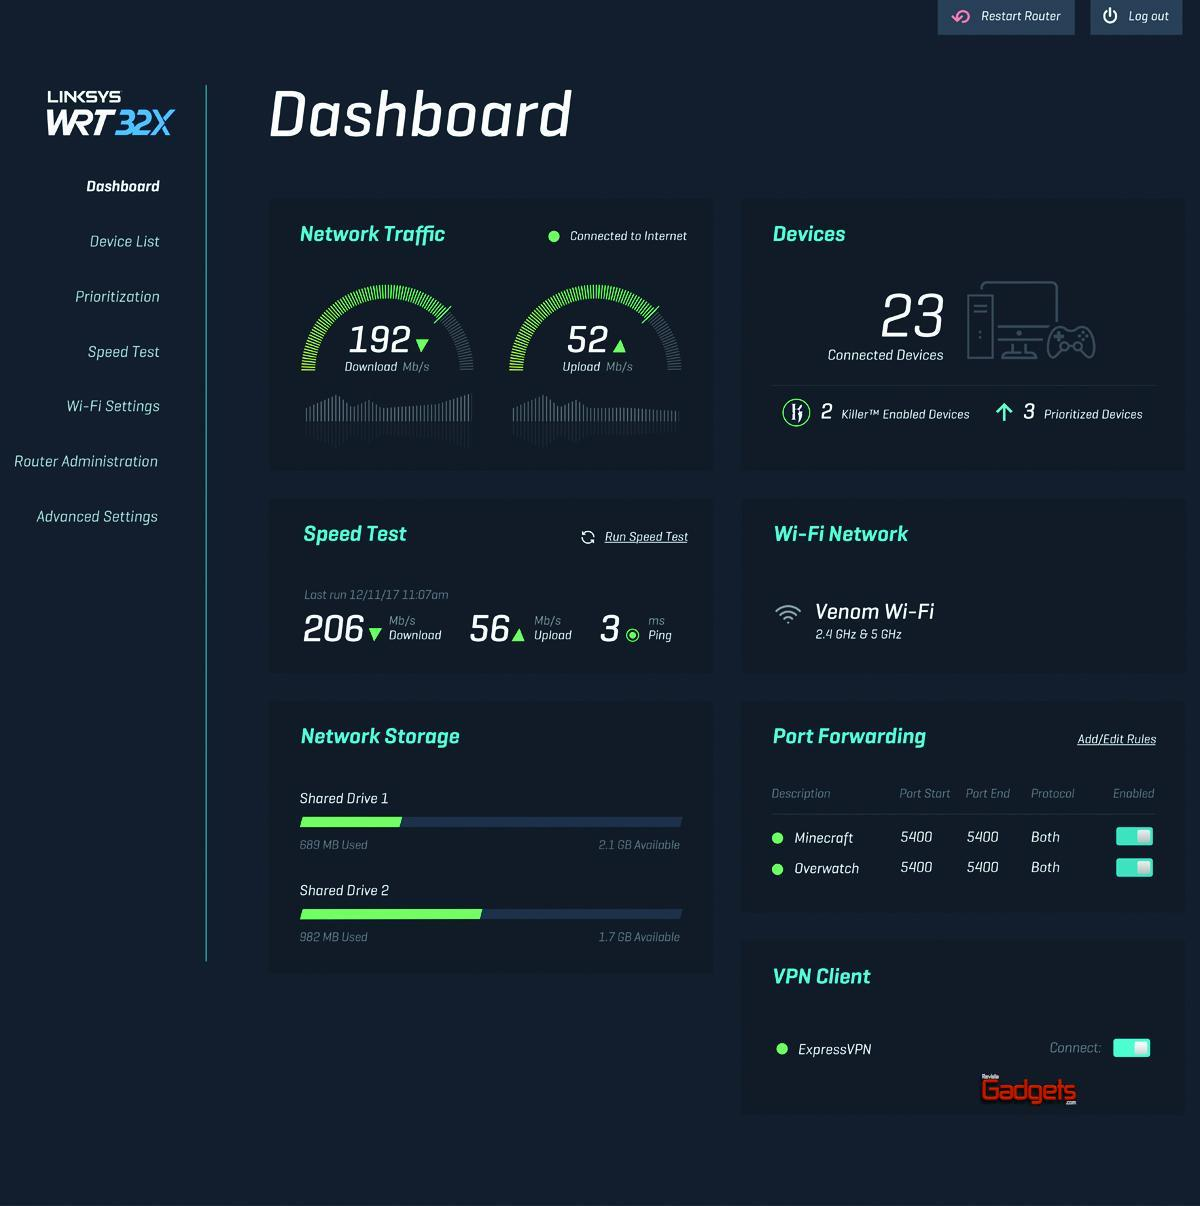 Linksys WRT32X Software dashboard